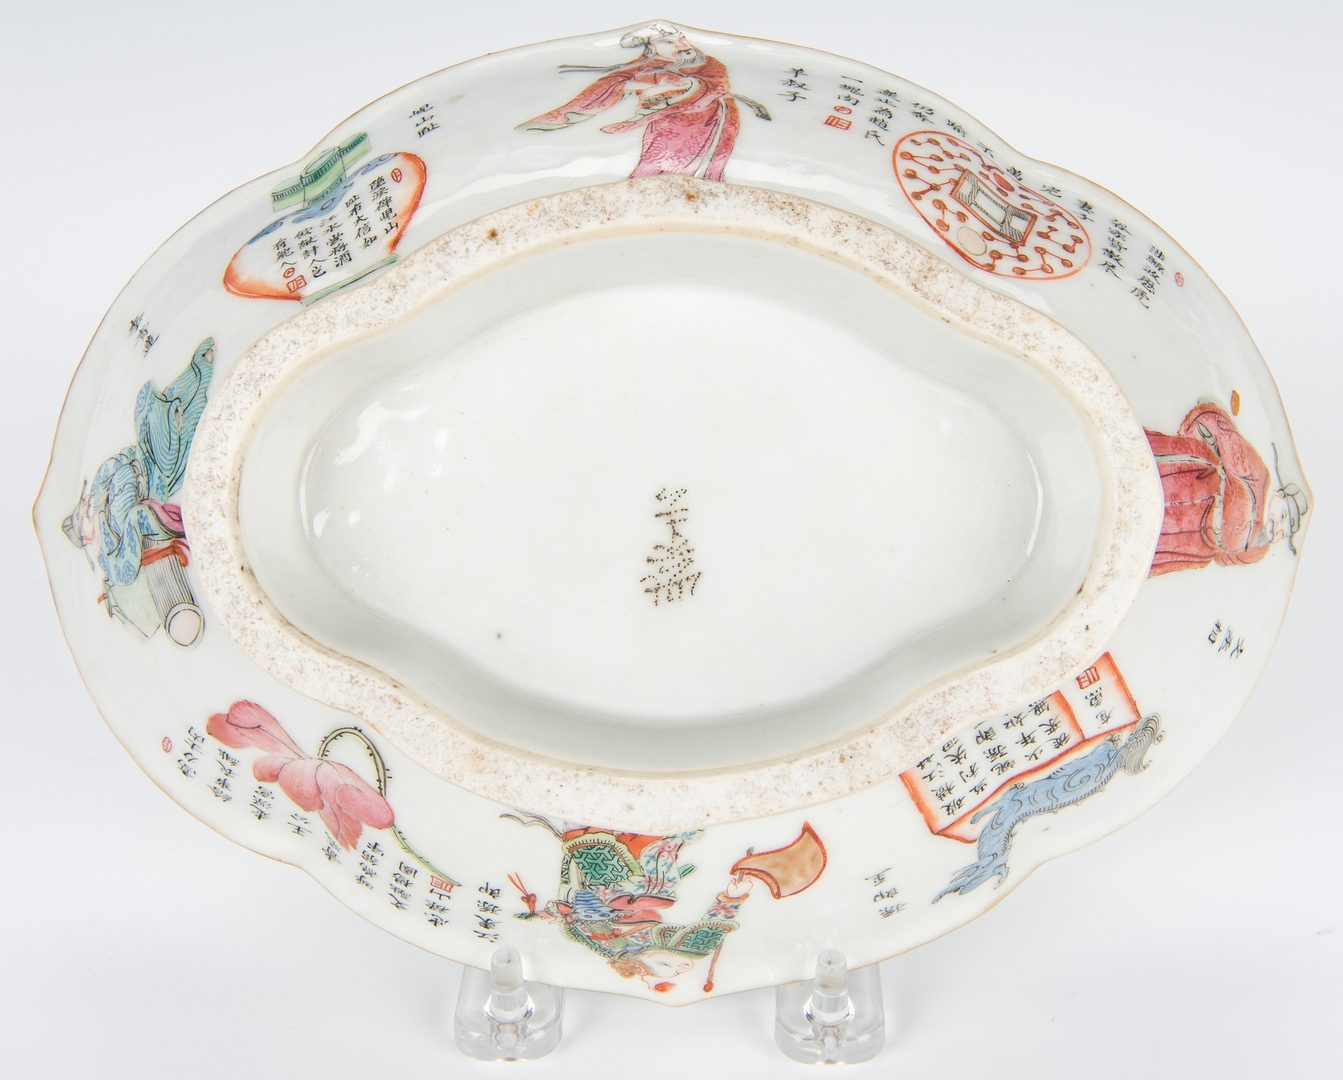 Lot 17: 3 Chinese Famille Rose Lozenge Shaped Porcelain Dishes